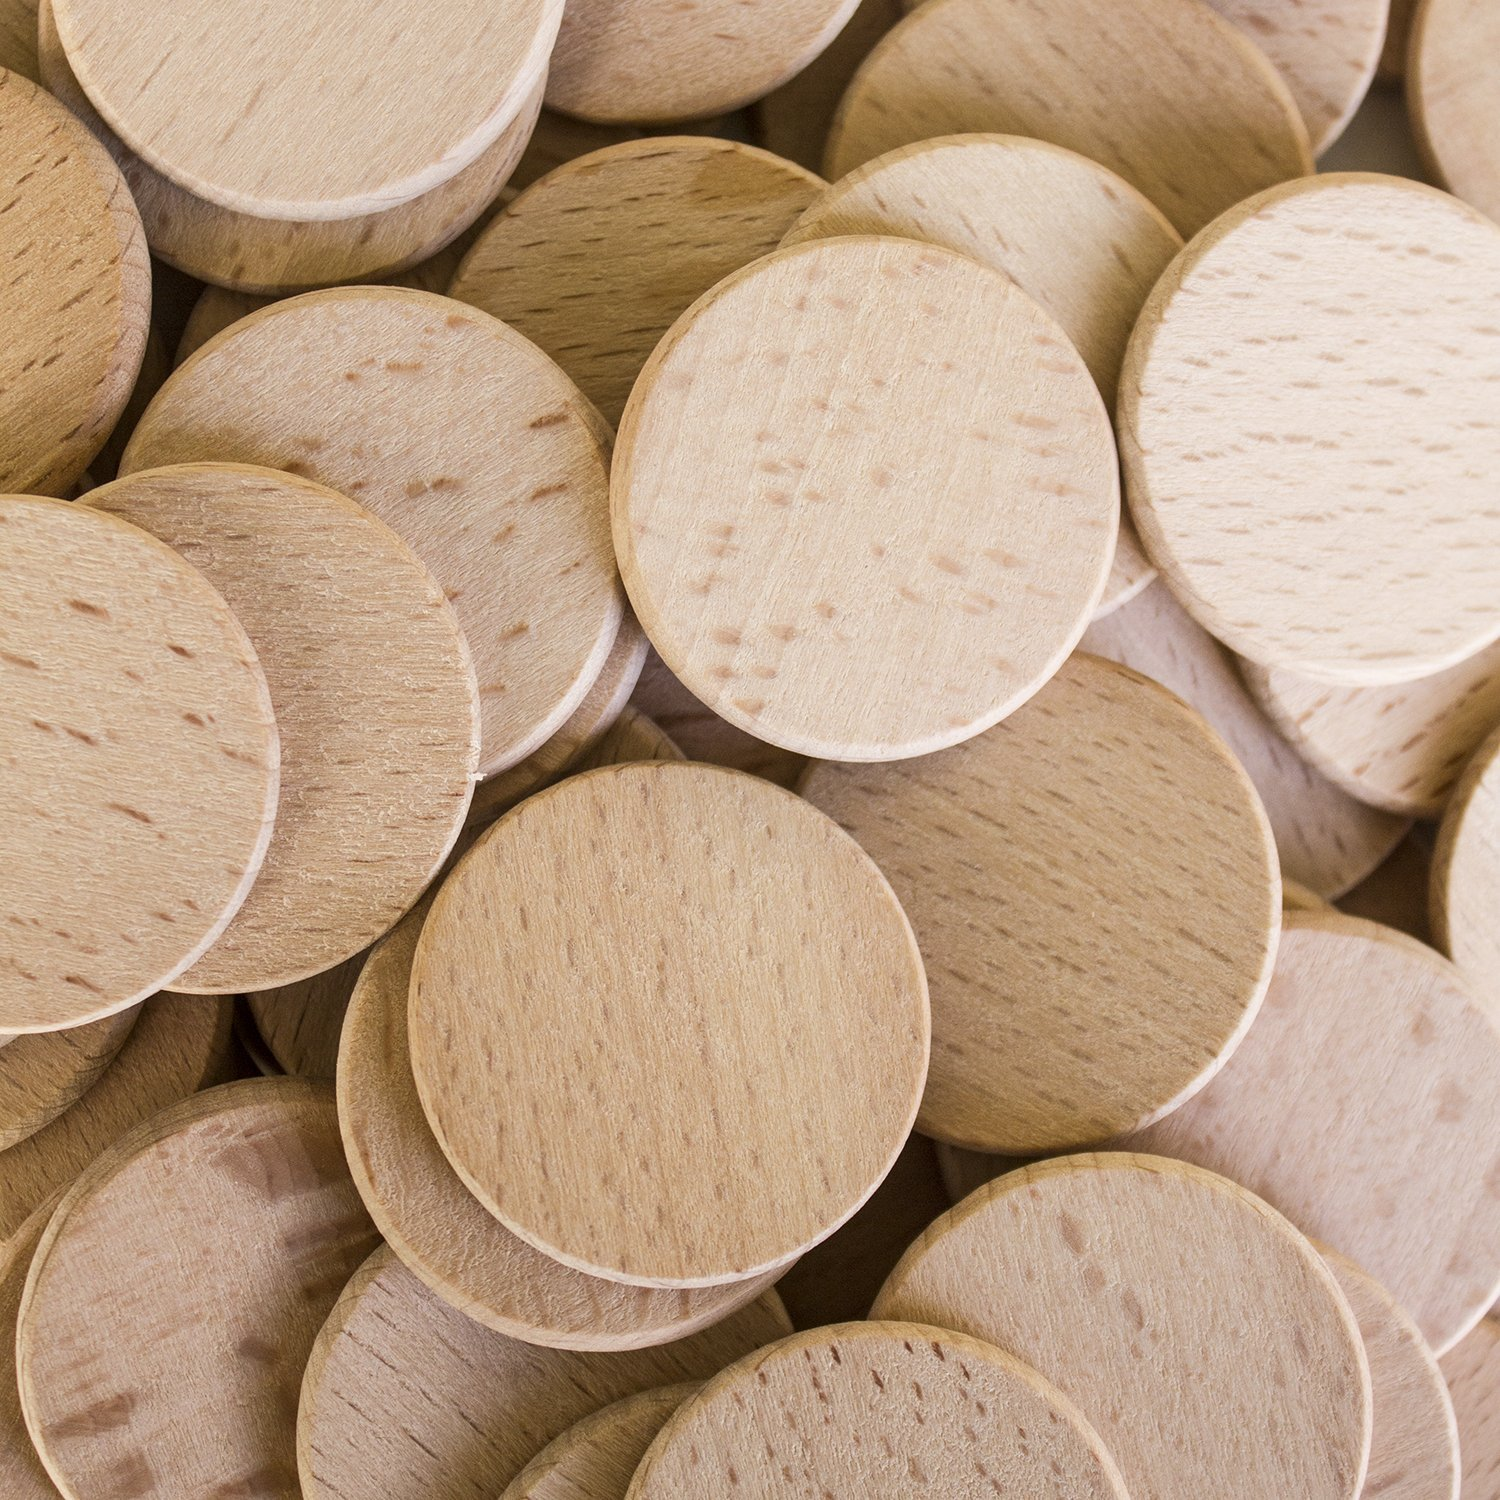 "Round Unfinished 1.5"" Wood Cutout Circles Tags Chips for Arts & Crafts Projects, Board Game Pieces, Ornaments (100 Pieces) by Super Z Outlet"